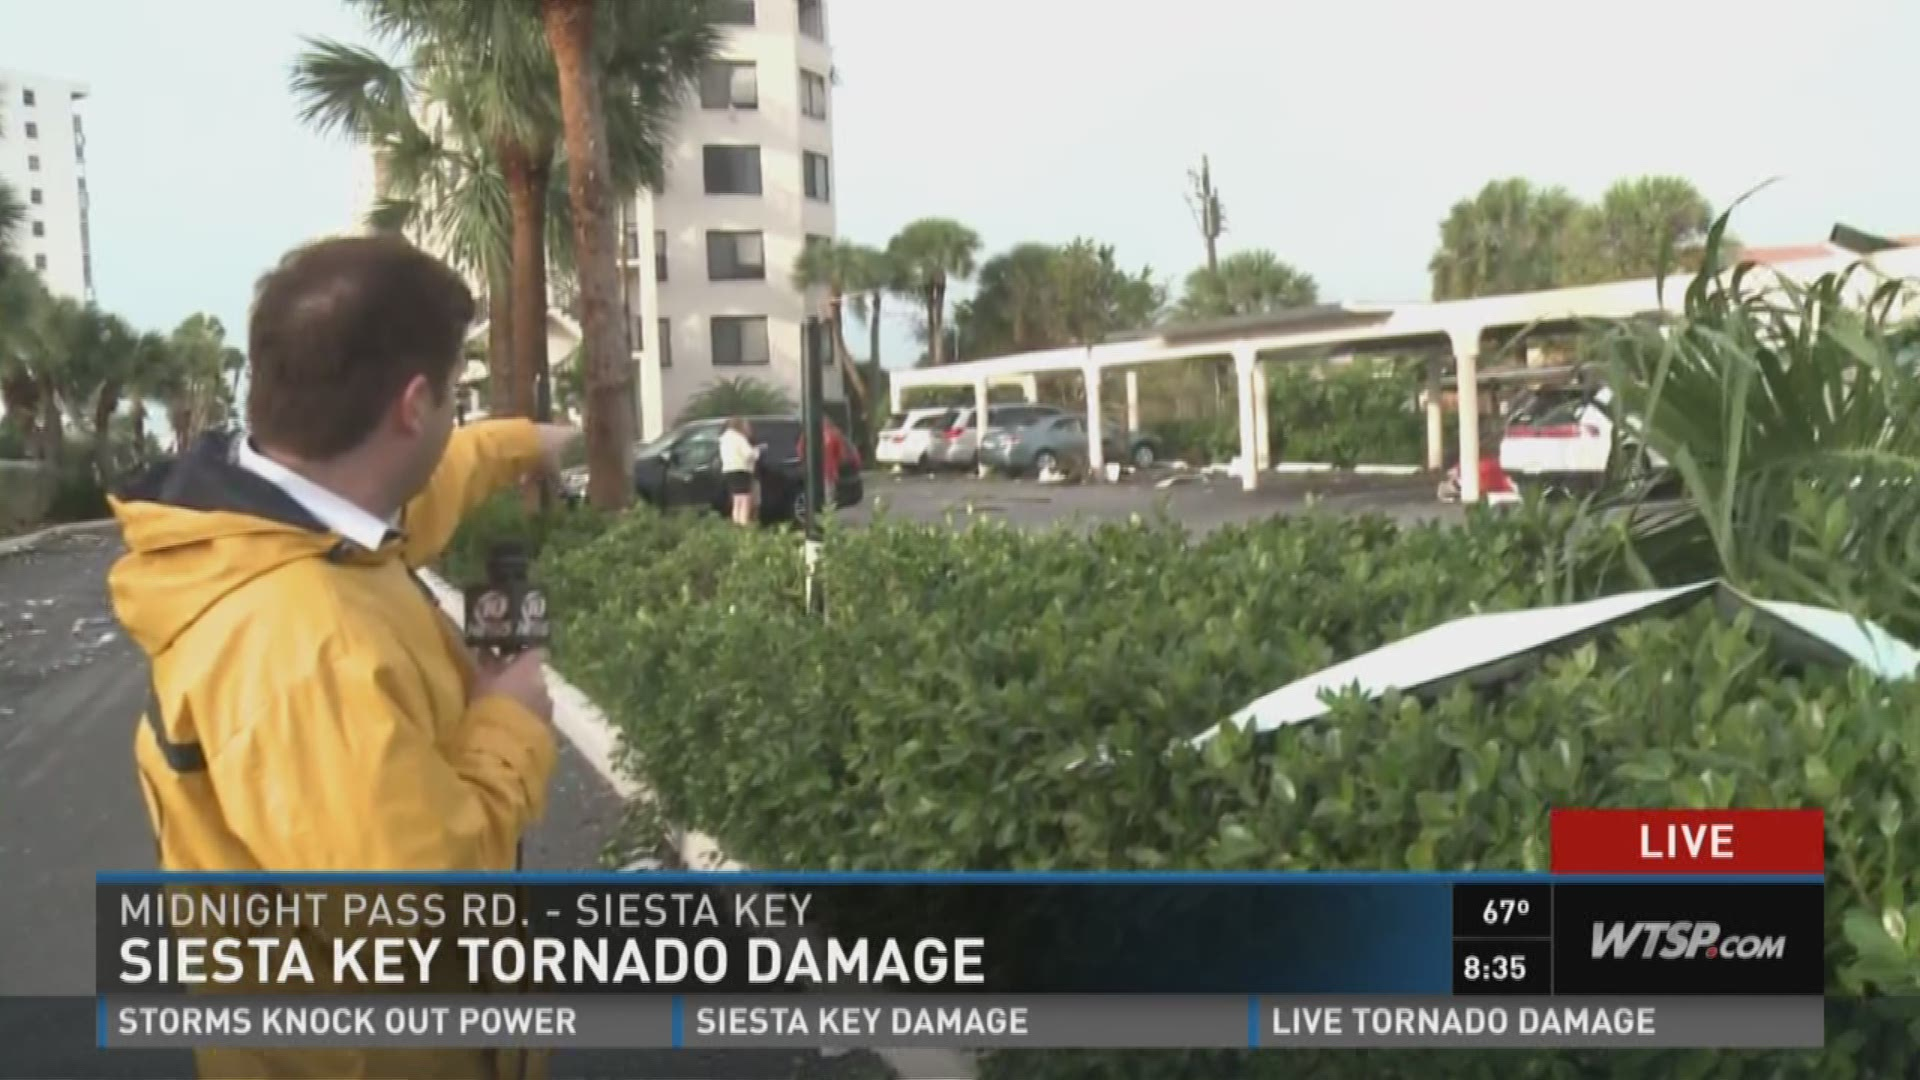 Siesta Key tornado damage